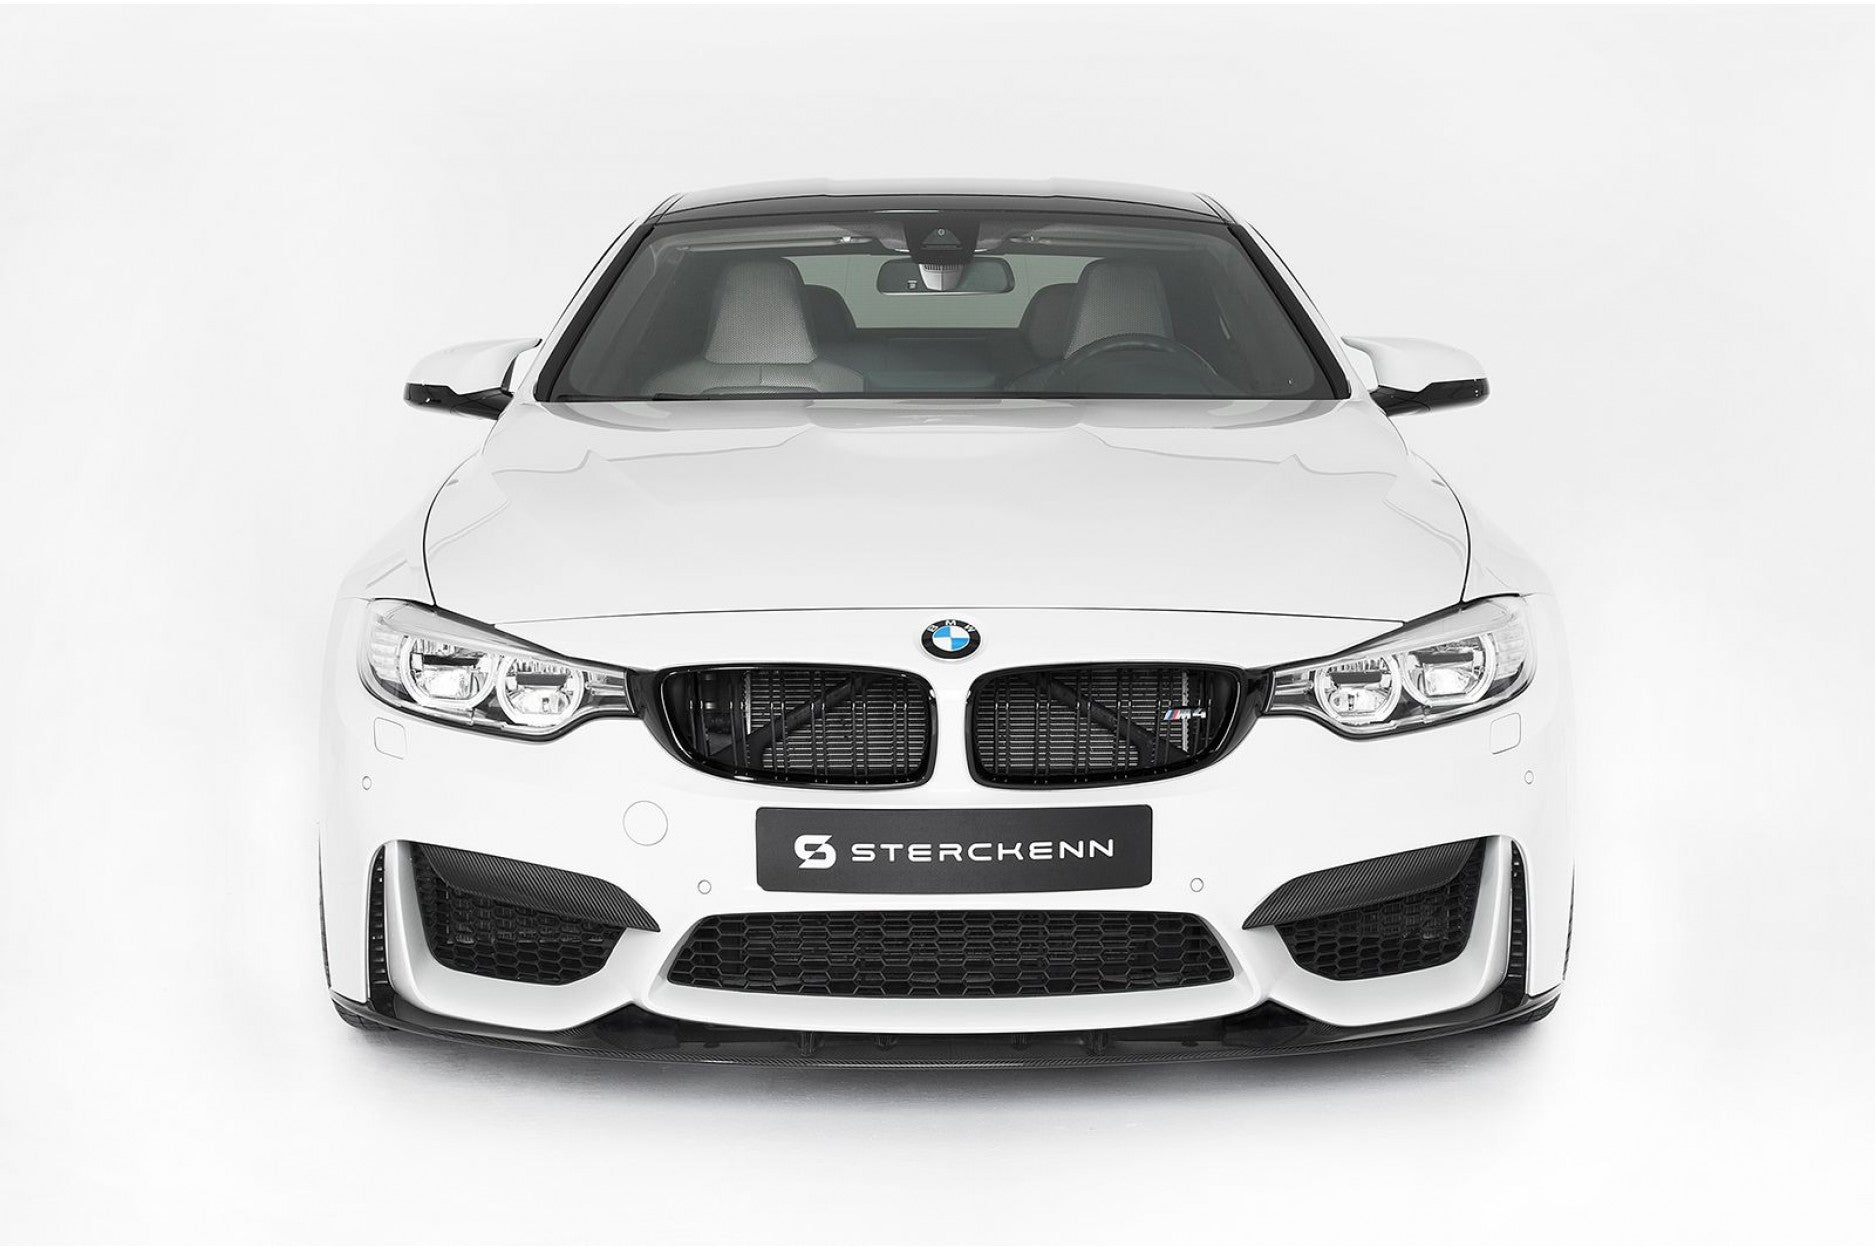 Sterckenn Carbon Front Cover BMW F8x M3 M4 - Boden Visuals